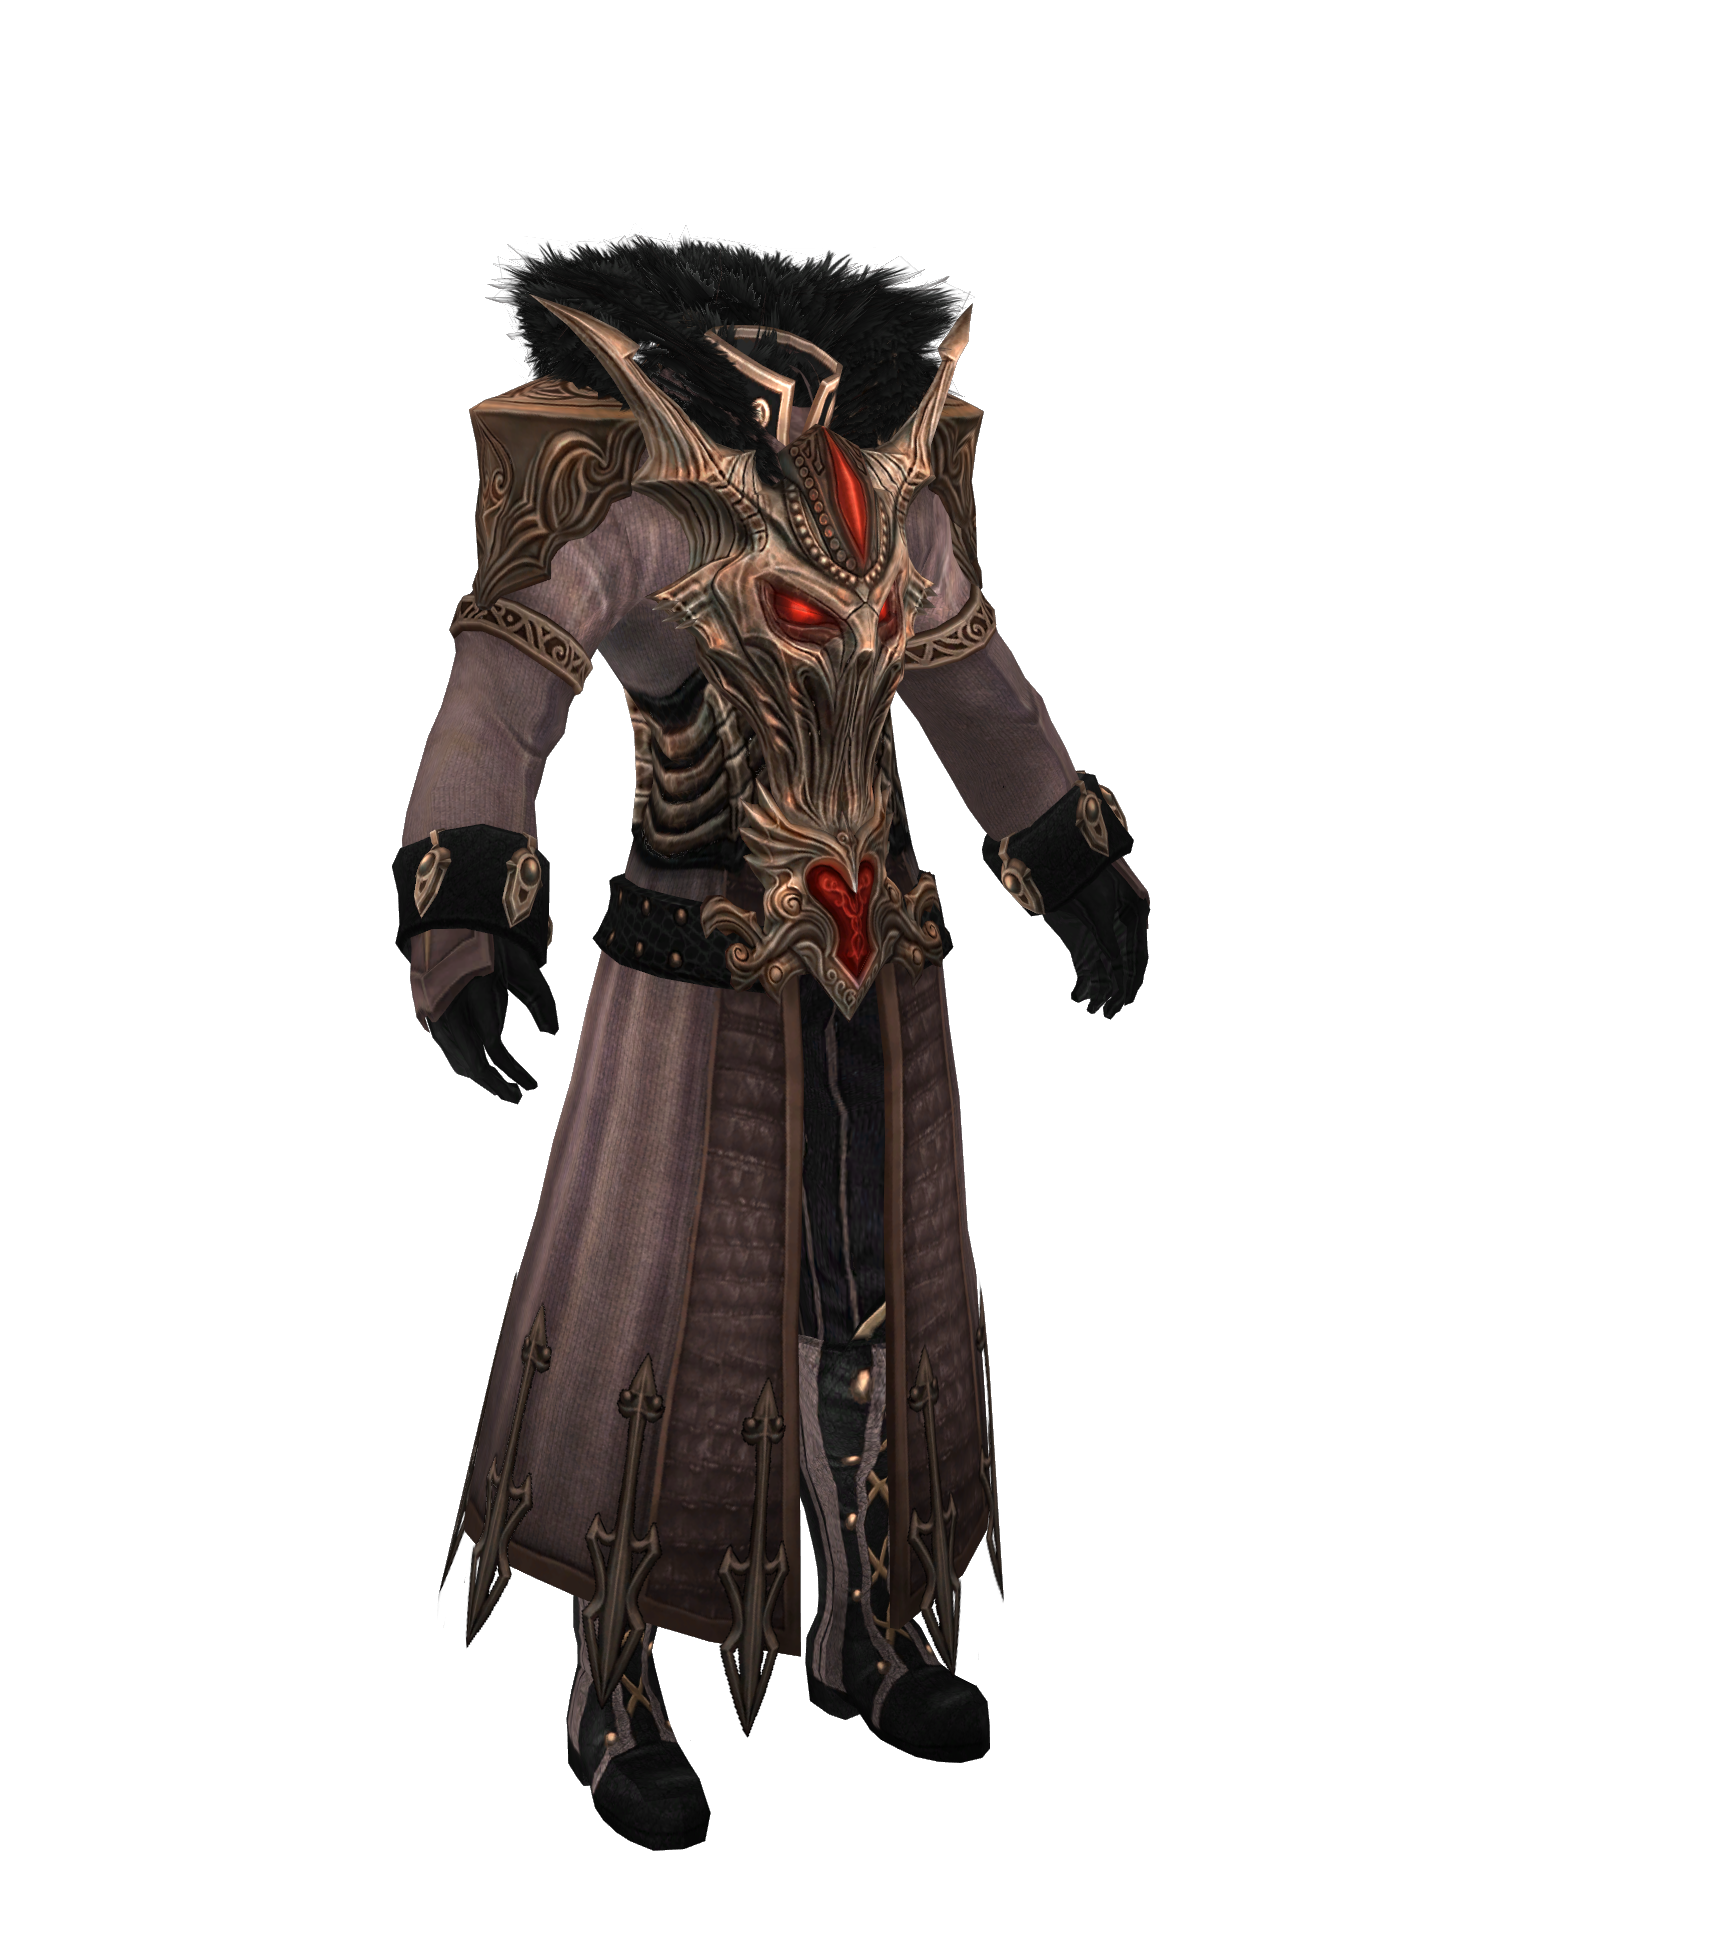 XPS TES V mods: TERA's Darkmage robe by Tokami-Fuko on